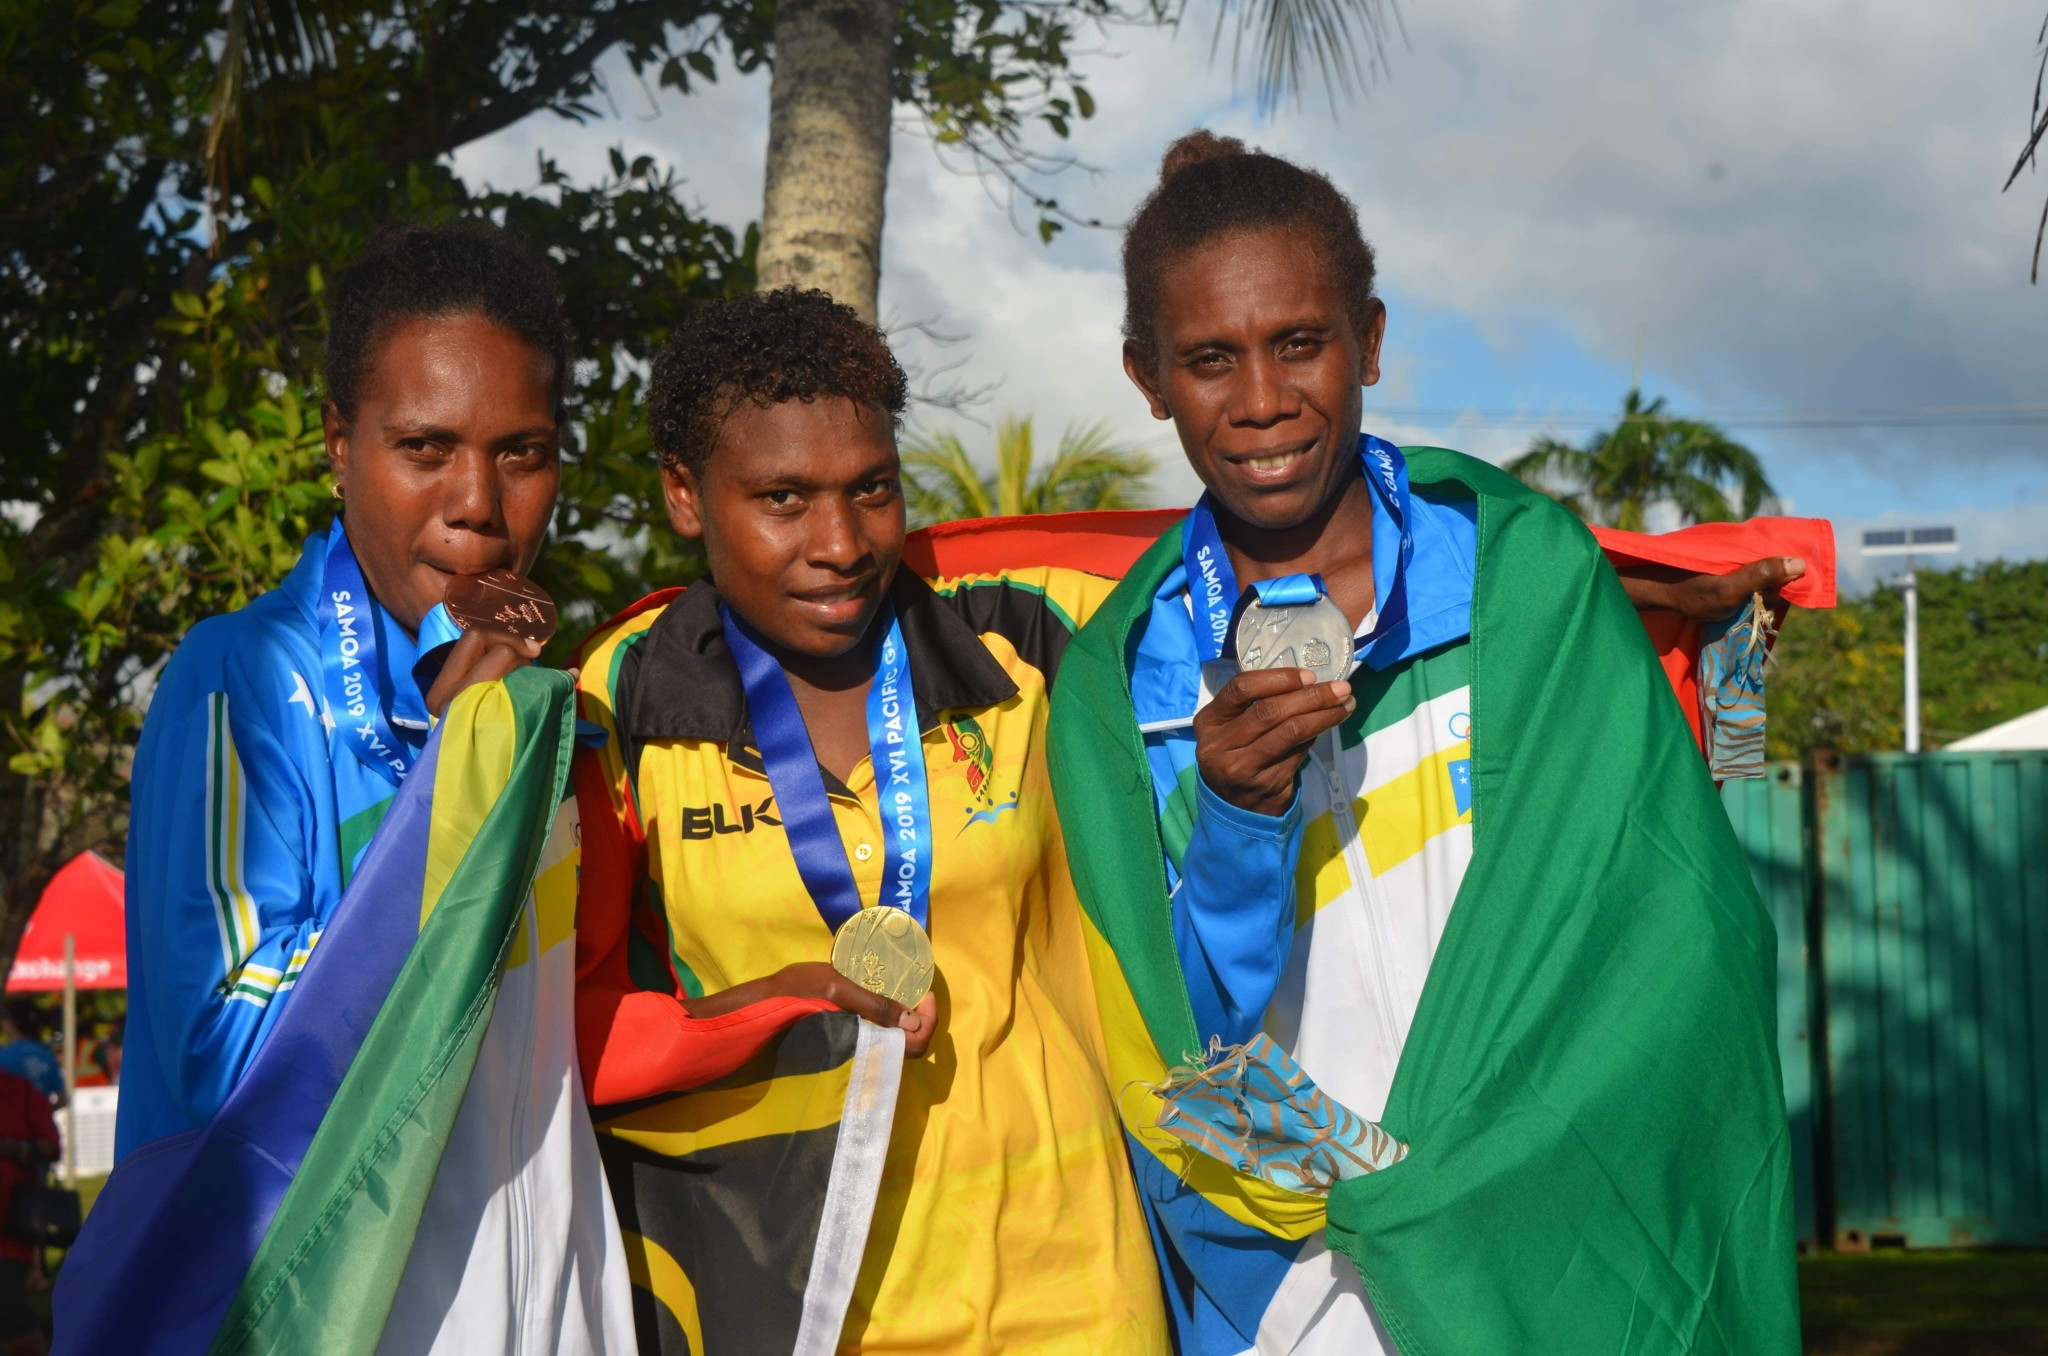 Dianah Matekali and Solomon Islands team mate Sharon Firisua claimed silver and bronze respectively ©Games News Service